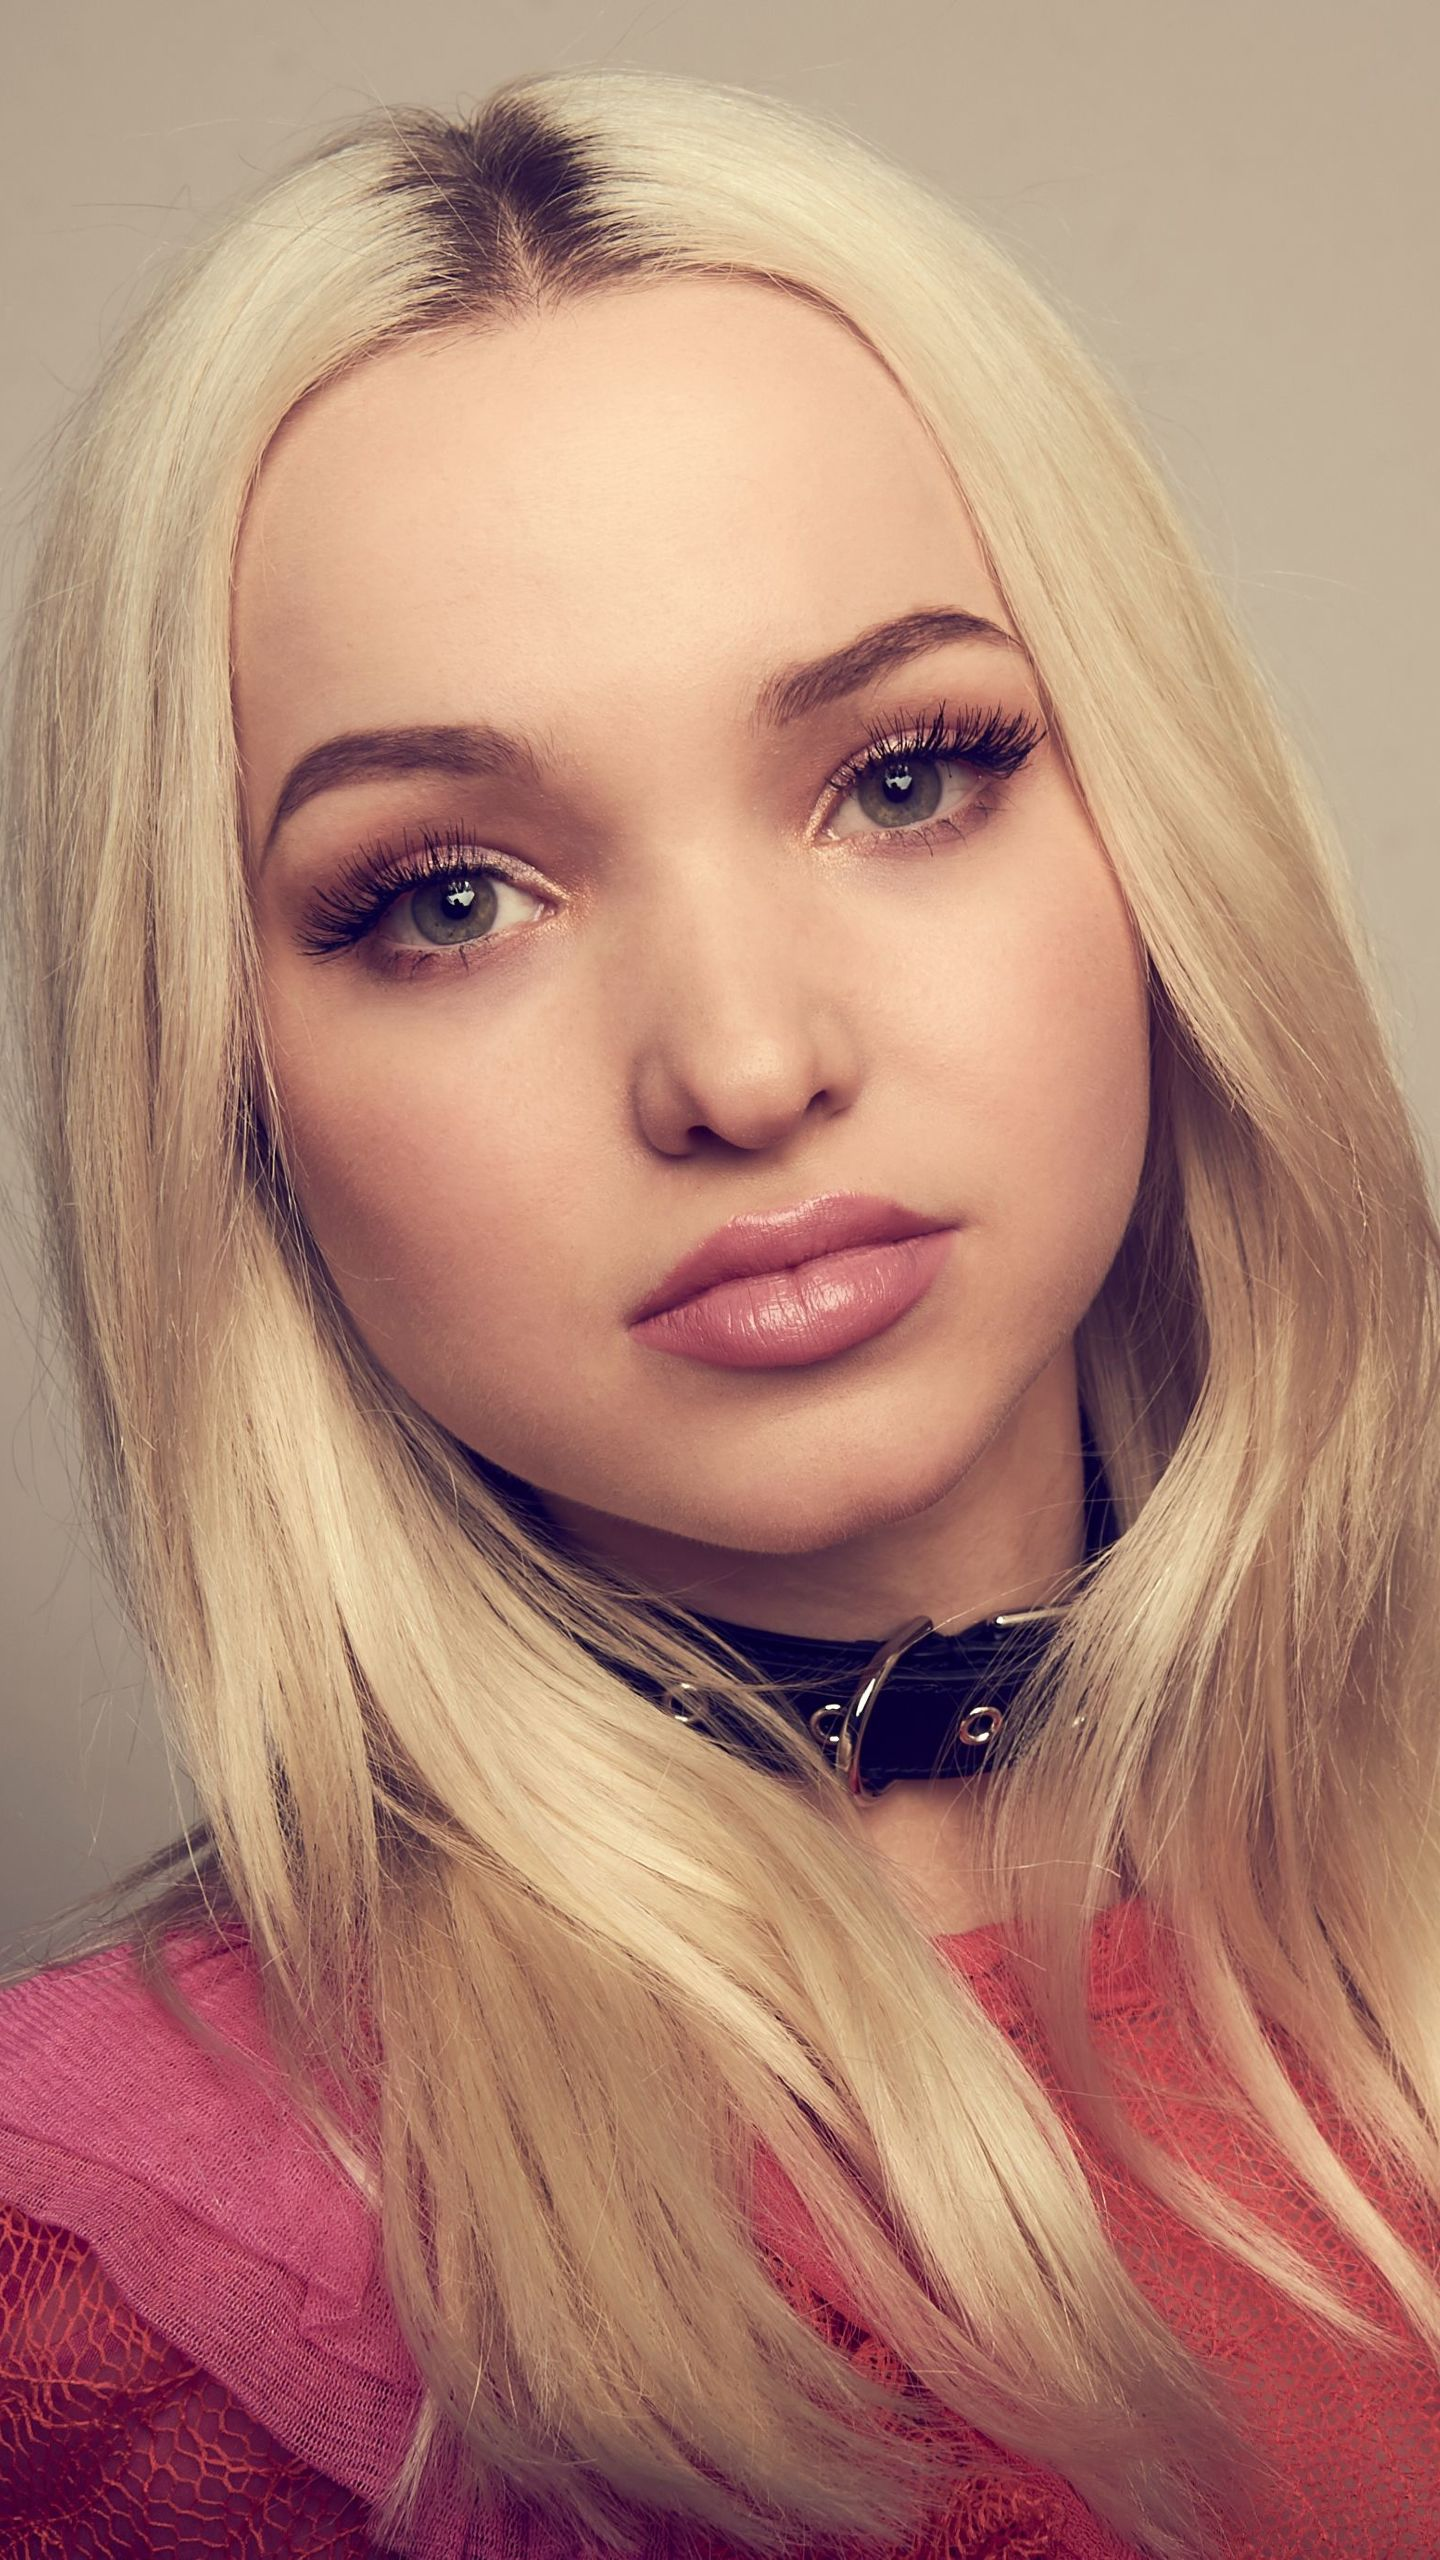 dove cameron face cute htc lg 4k wallpapers samsung galaxy s7 s6 g4 qhd edge note series wallpapersden